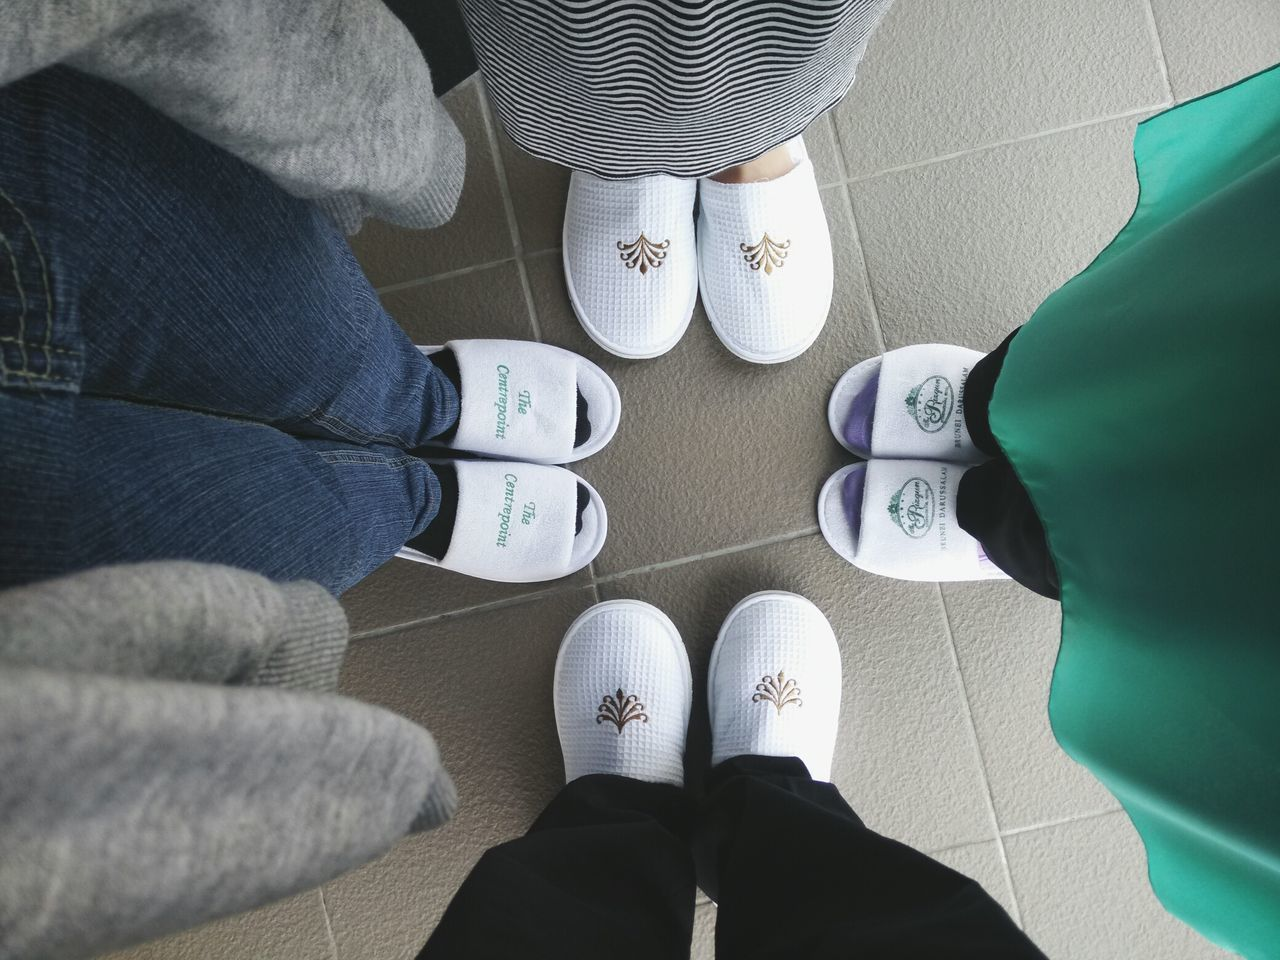 Low Section Standing Shoe Human Leg Human Body Part Personal Perspective People Men Real People Only Men Adult One Person Lifestyles Adults Only Indoors  One Man Only Day Friendship Close-up Feet Travel Photography OPPO Brunei Brunei Darussalam Break The Mold